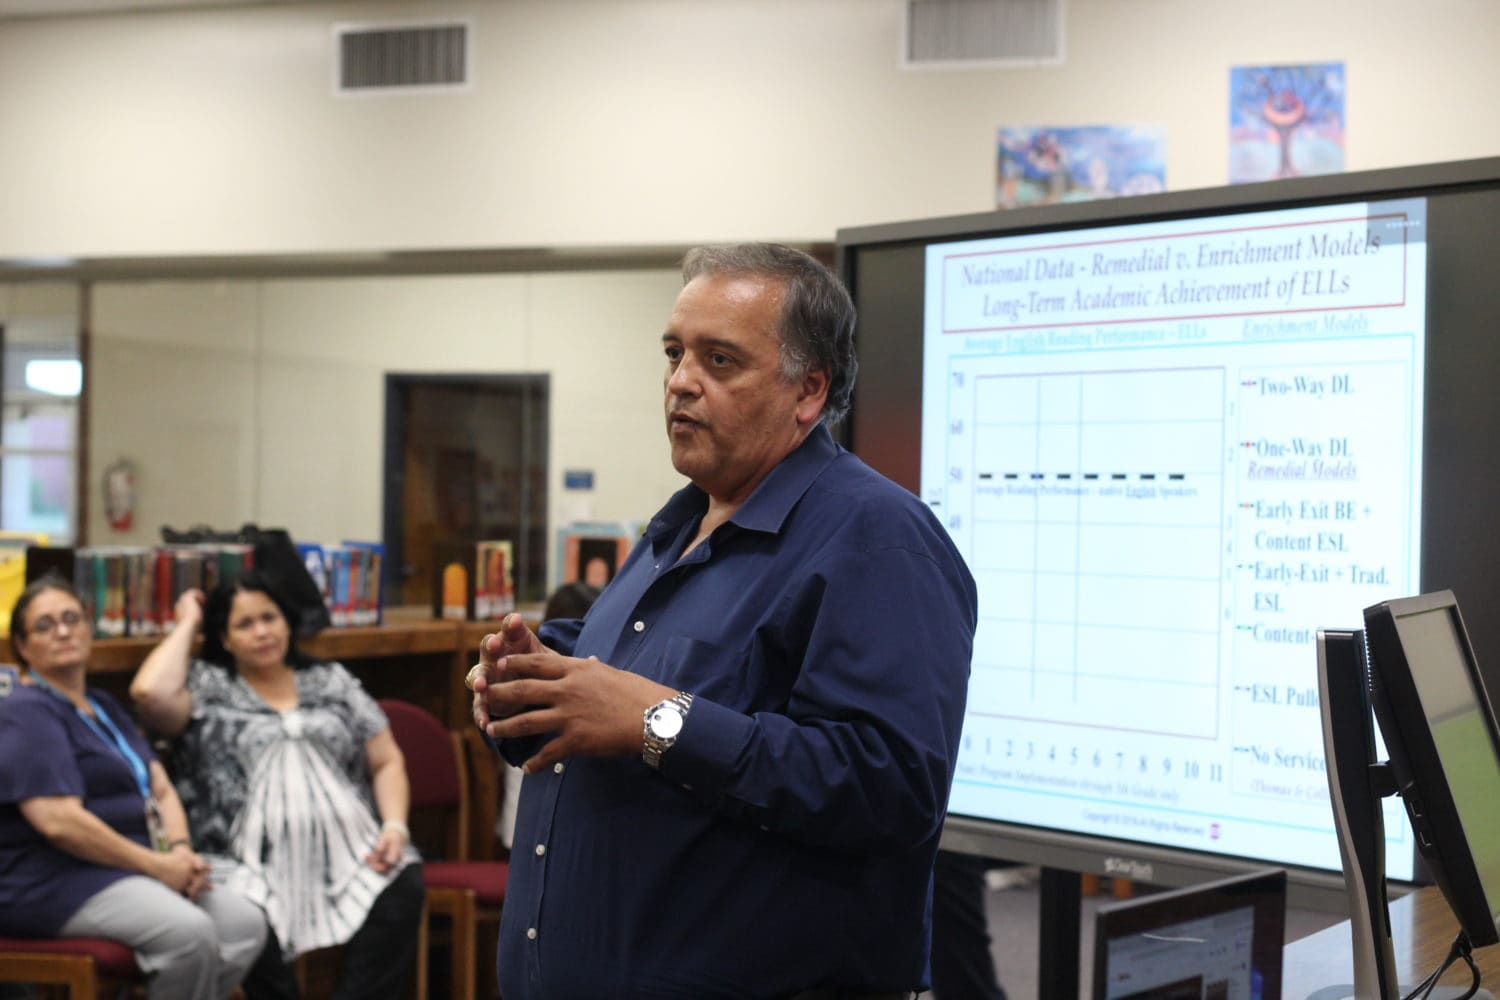 the district recently announced the adoption of the nationally recognized Gomez and Gomez instructional framework